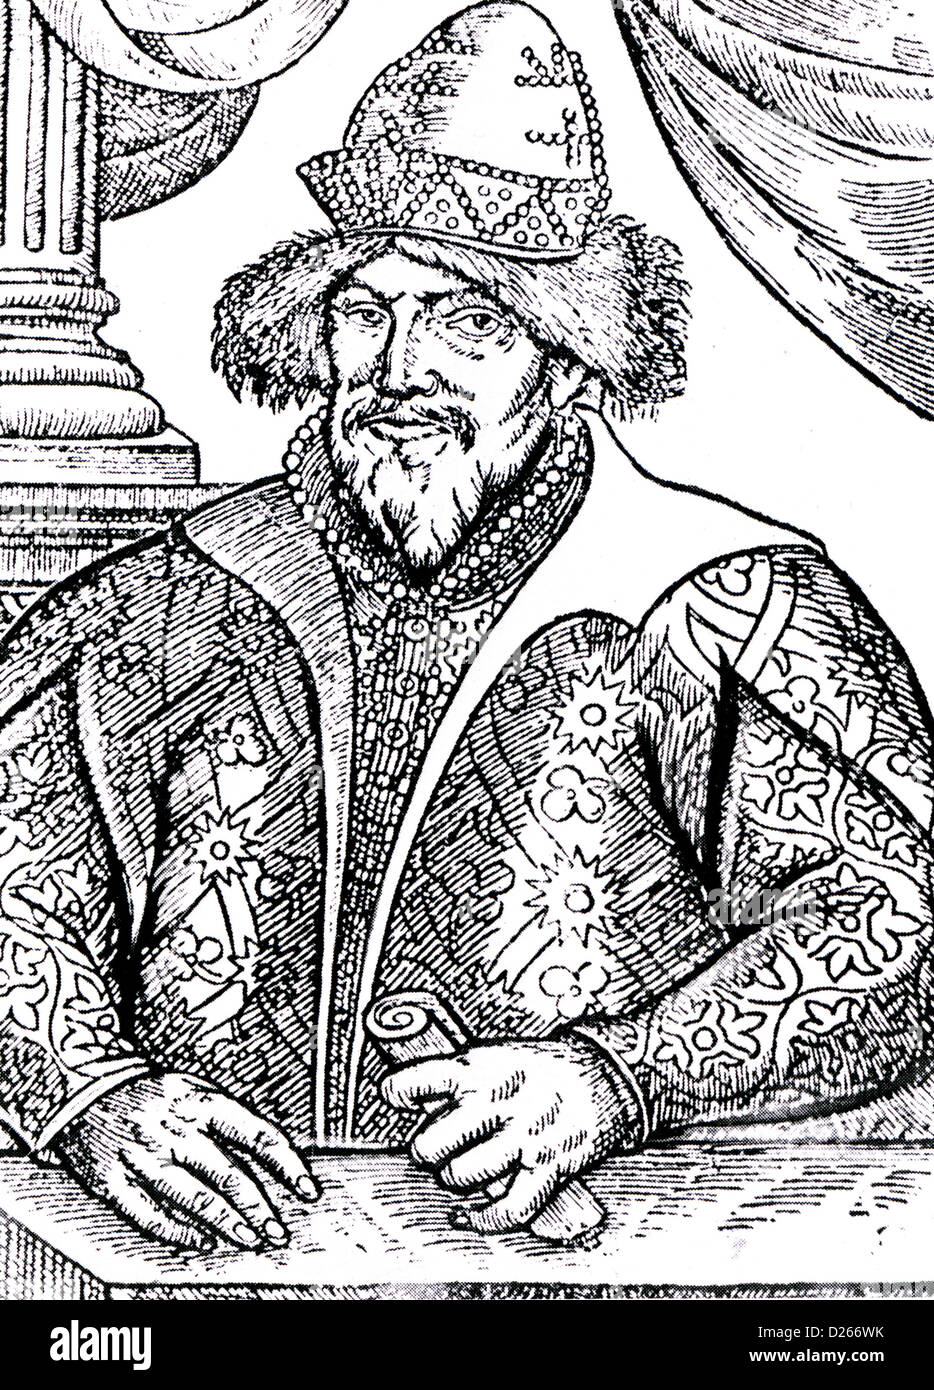 IVAN THE TERRIBLE (1530-1584) Tsar of All the Russias in a contemporary engraving - Stock Image